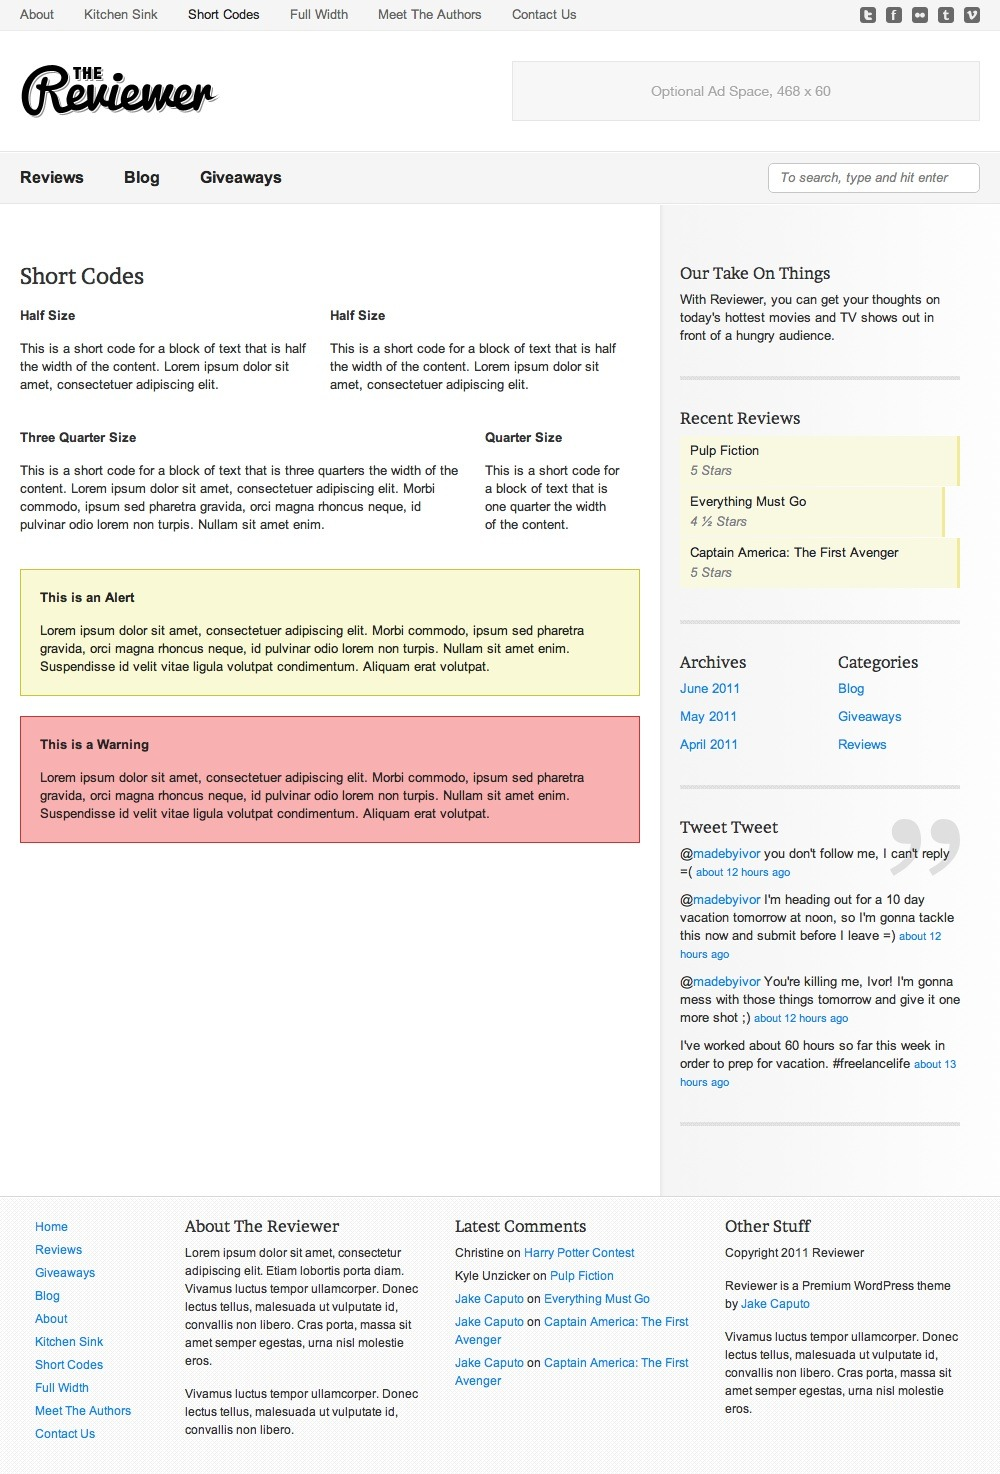 Reviewer - WP Theme for Entertainment Reviews - Multiple layout short codes as wells as an alert and a warning.